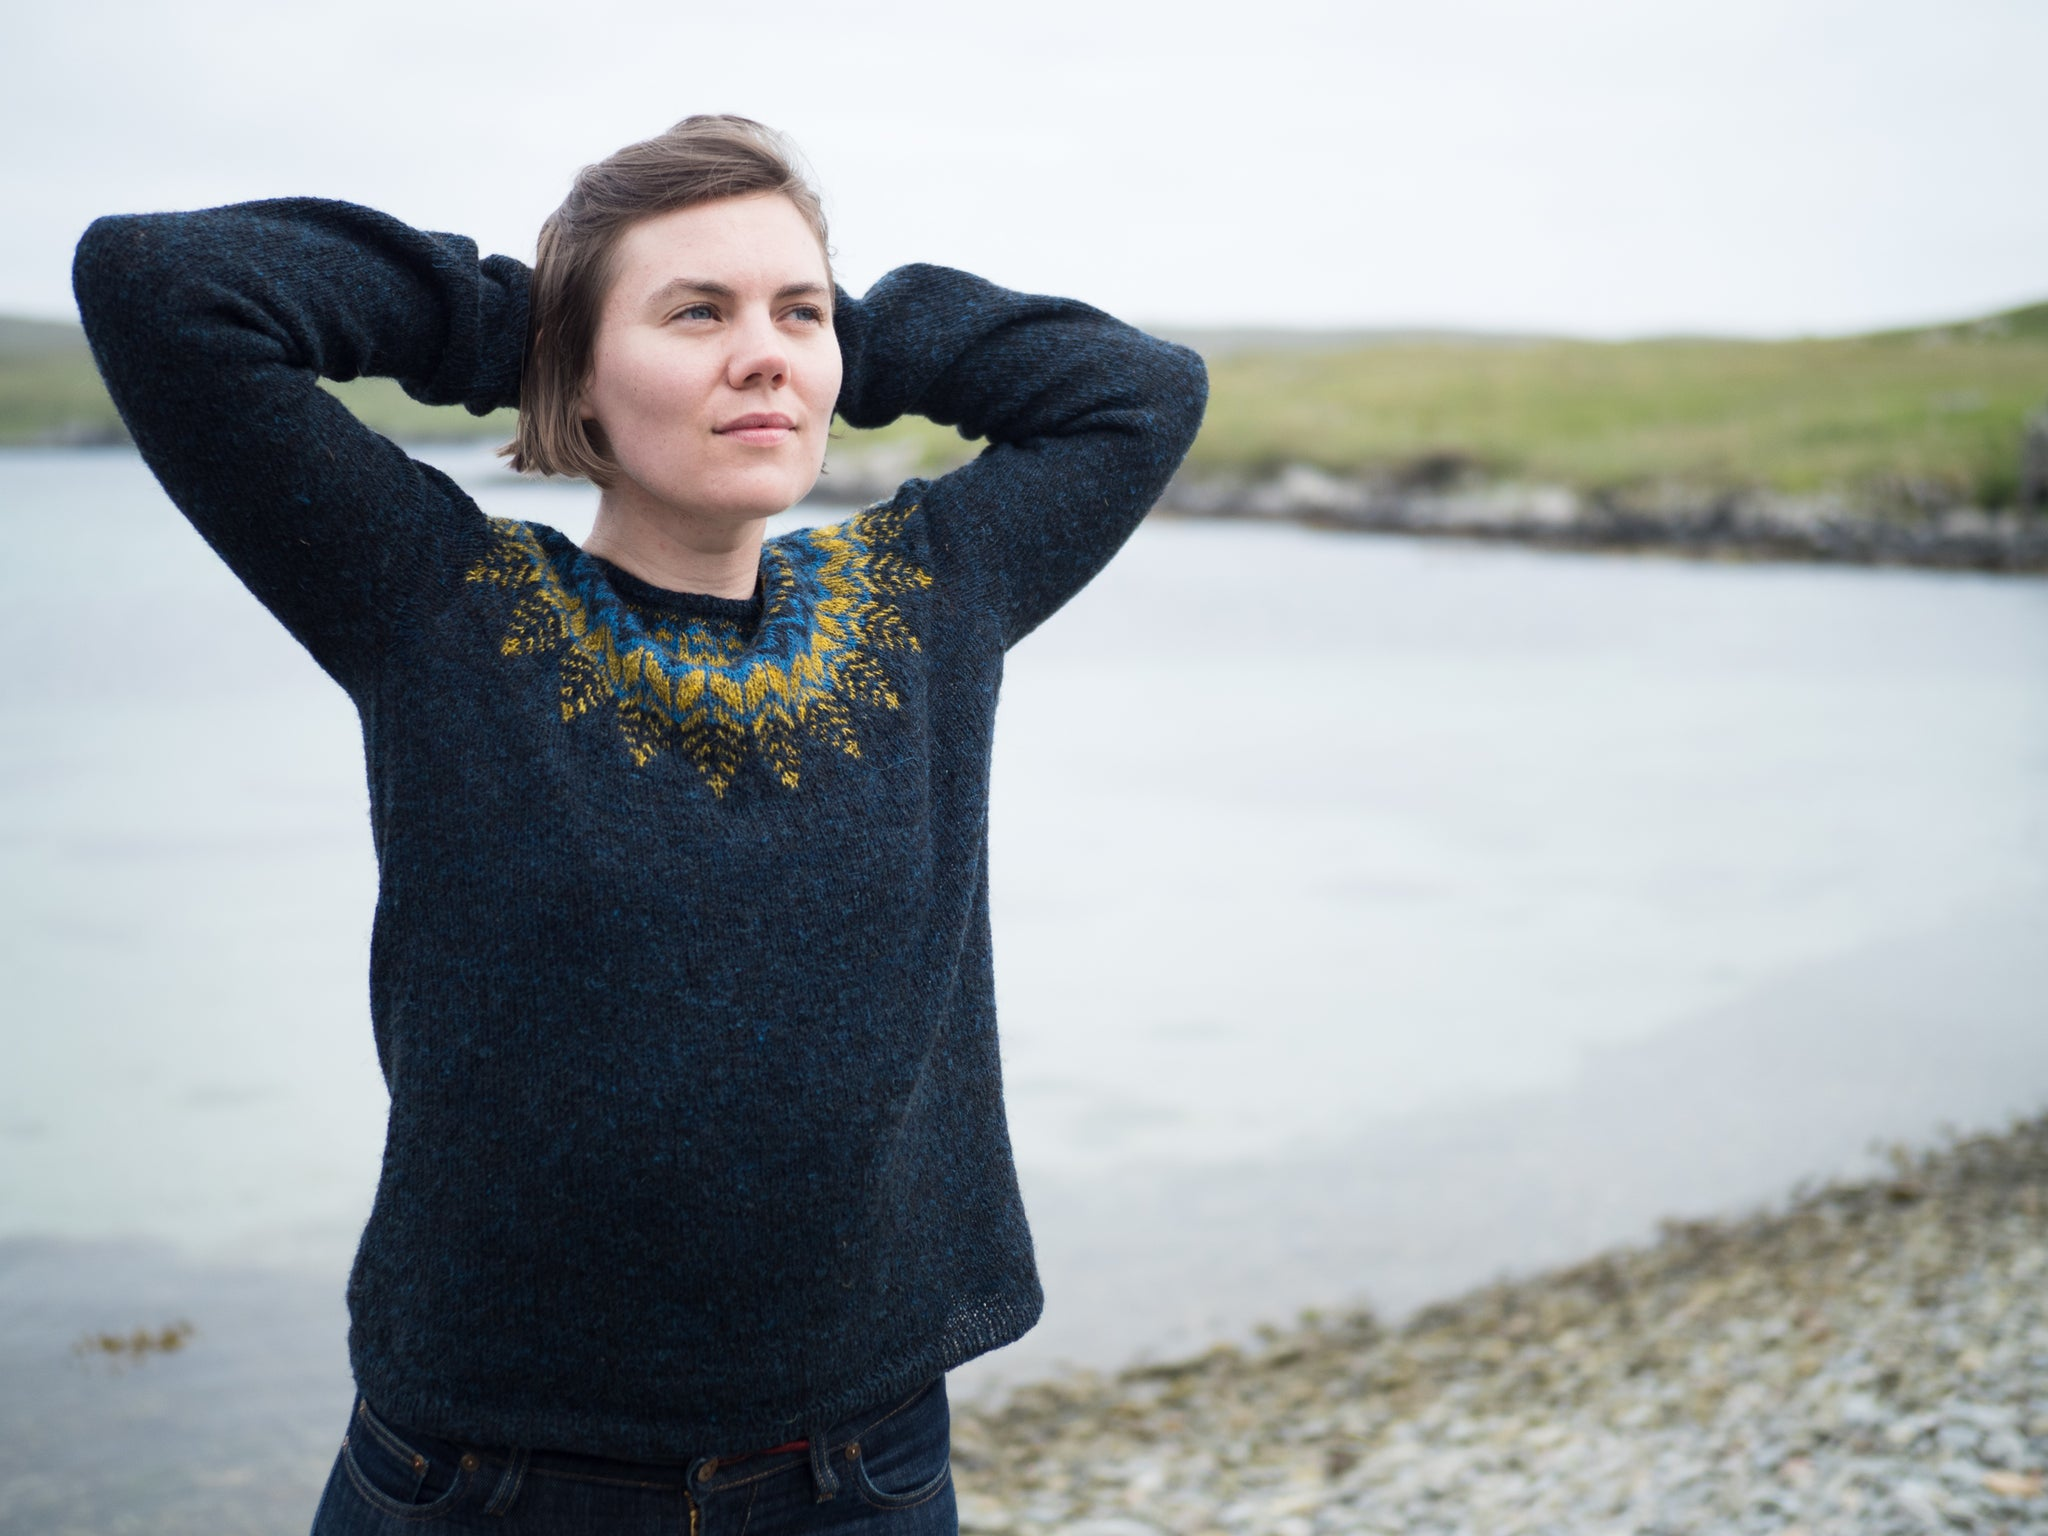 White woman wearing a dark blue sweater with a yellow and light blue patterned yoke, standing on a pebble beach with her hands behind her head